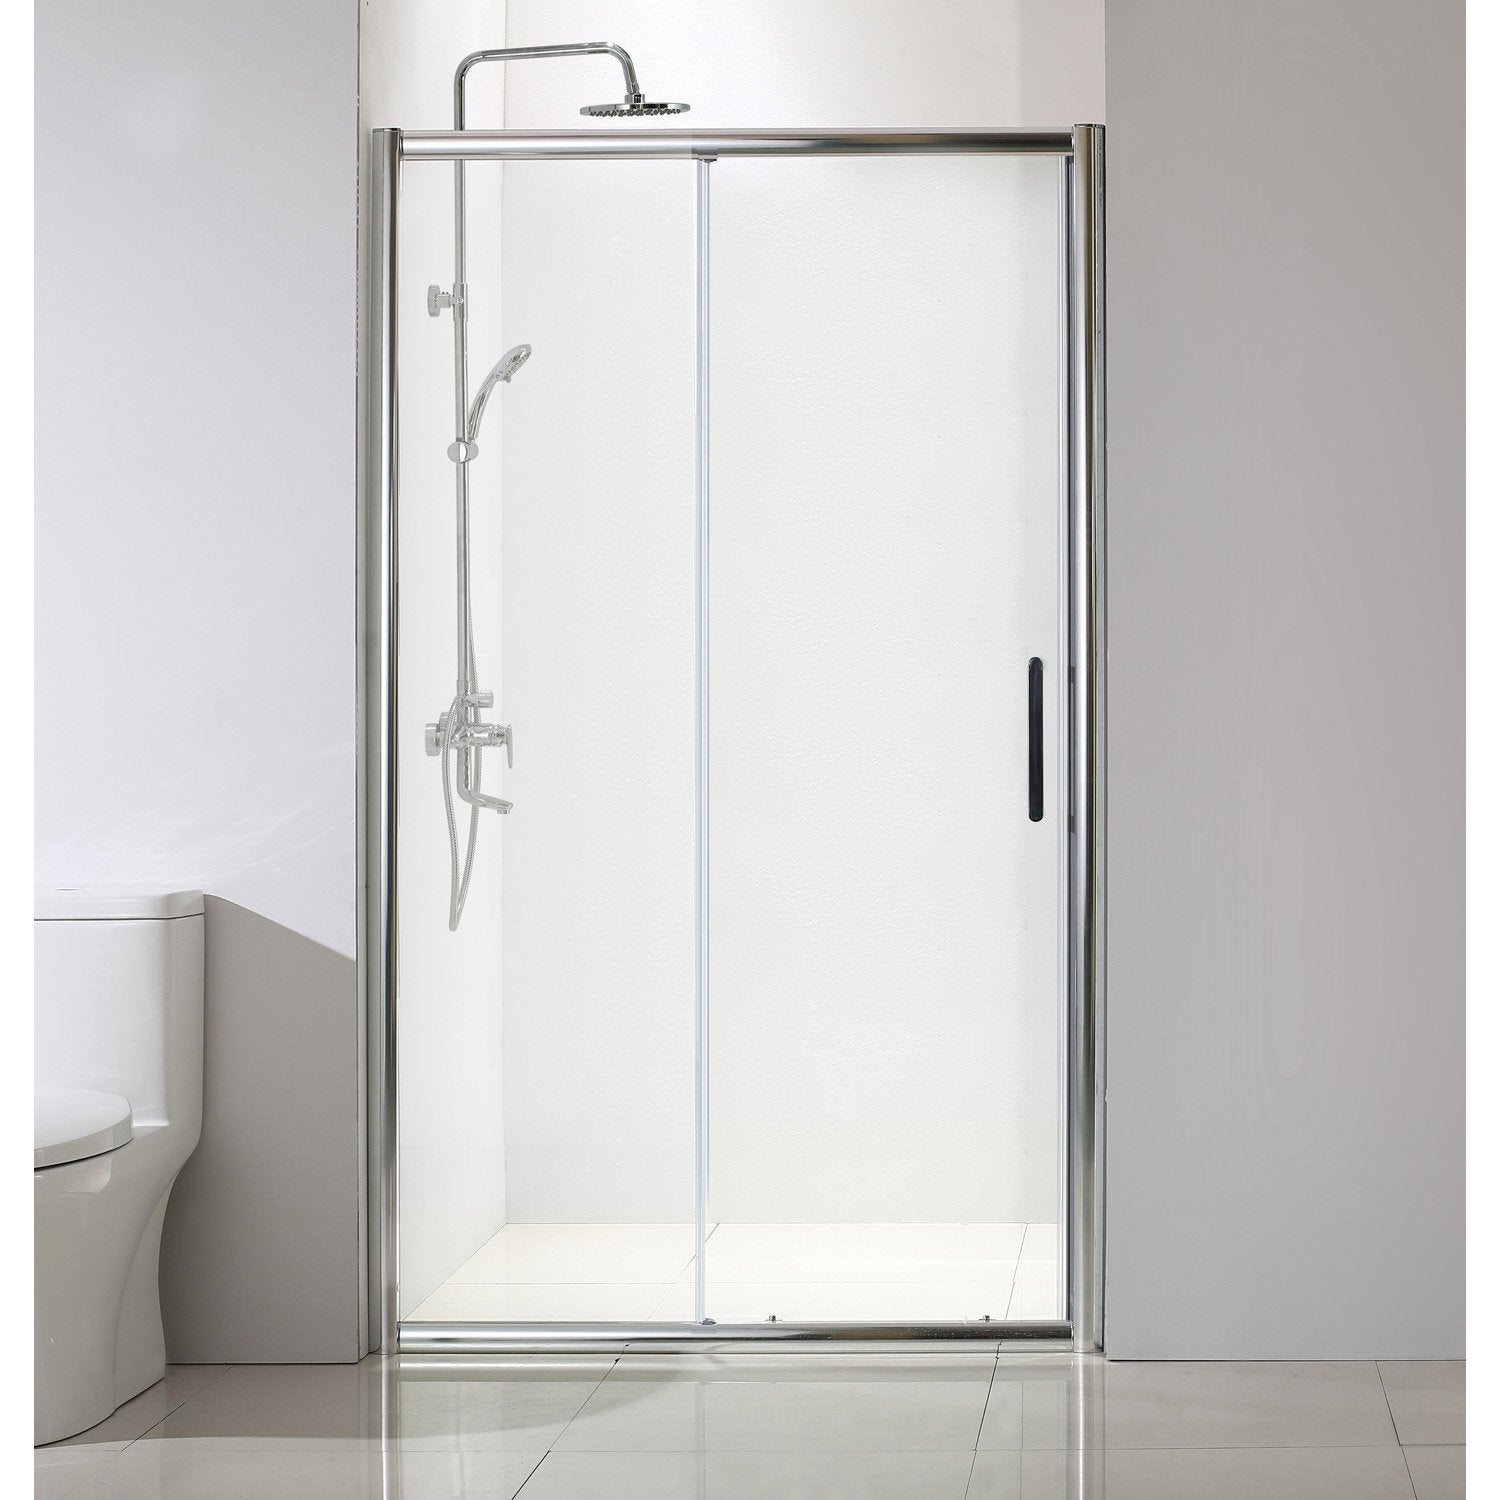 Porte coulissante douche 120 maison design for Leroy merlin porte douche